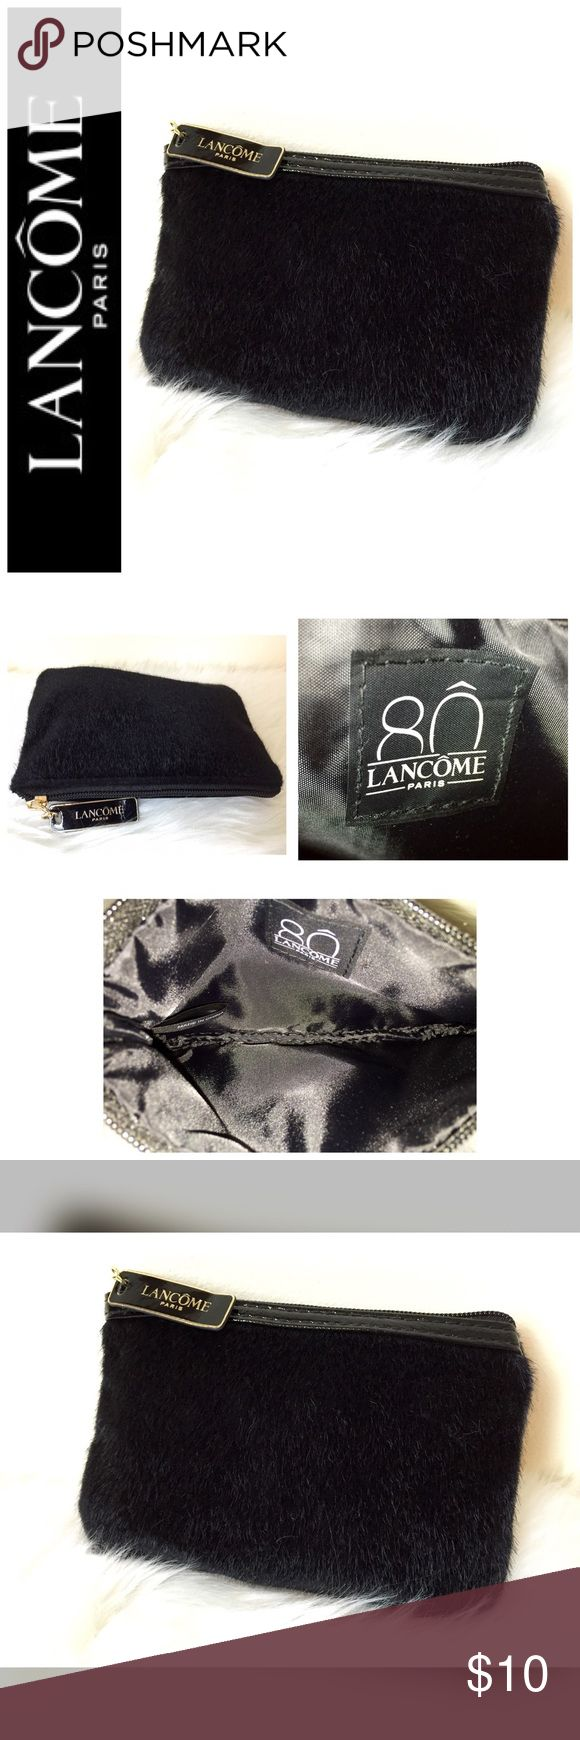 "NWOT Lancôme Paris Designer Cosmetic Bag Lancôme Paris Designer Cosmetic Bag, Faux Fur Style in Black with Gold Hardware and Black Vinyl Trim, Zip top Closure, Approx. Size is 6""x 4"", NWOT Lancome Bags Cosmetic Bags & Cases"